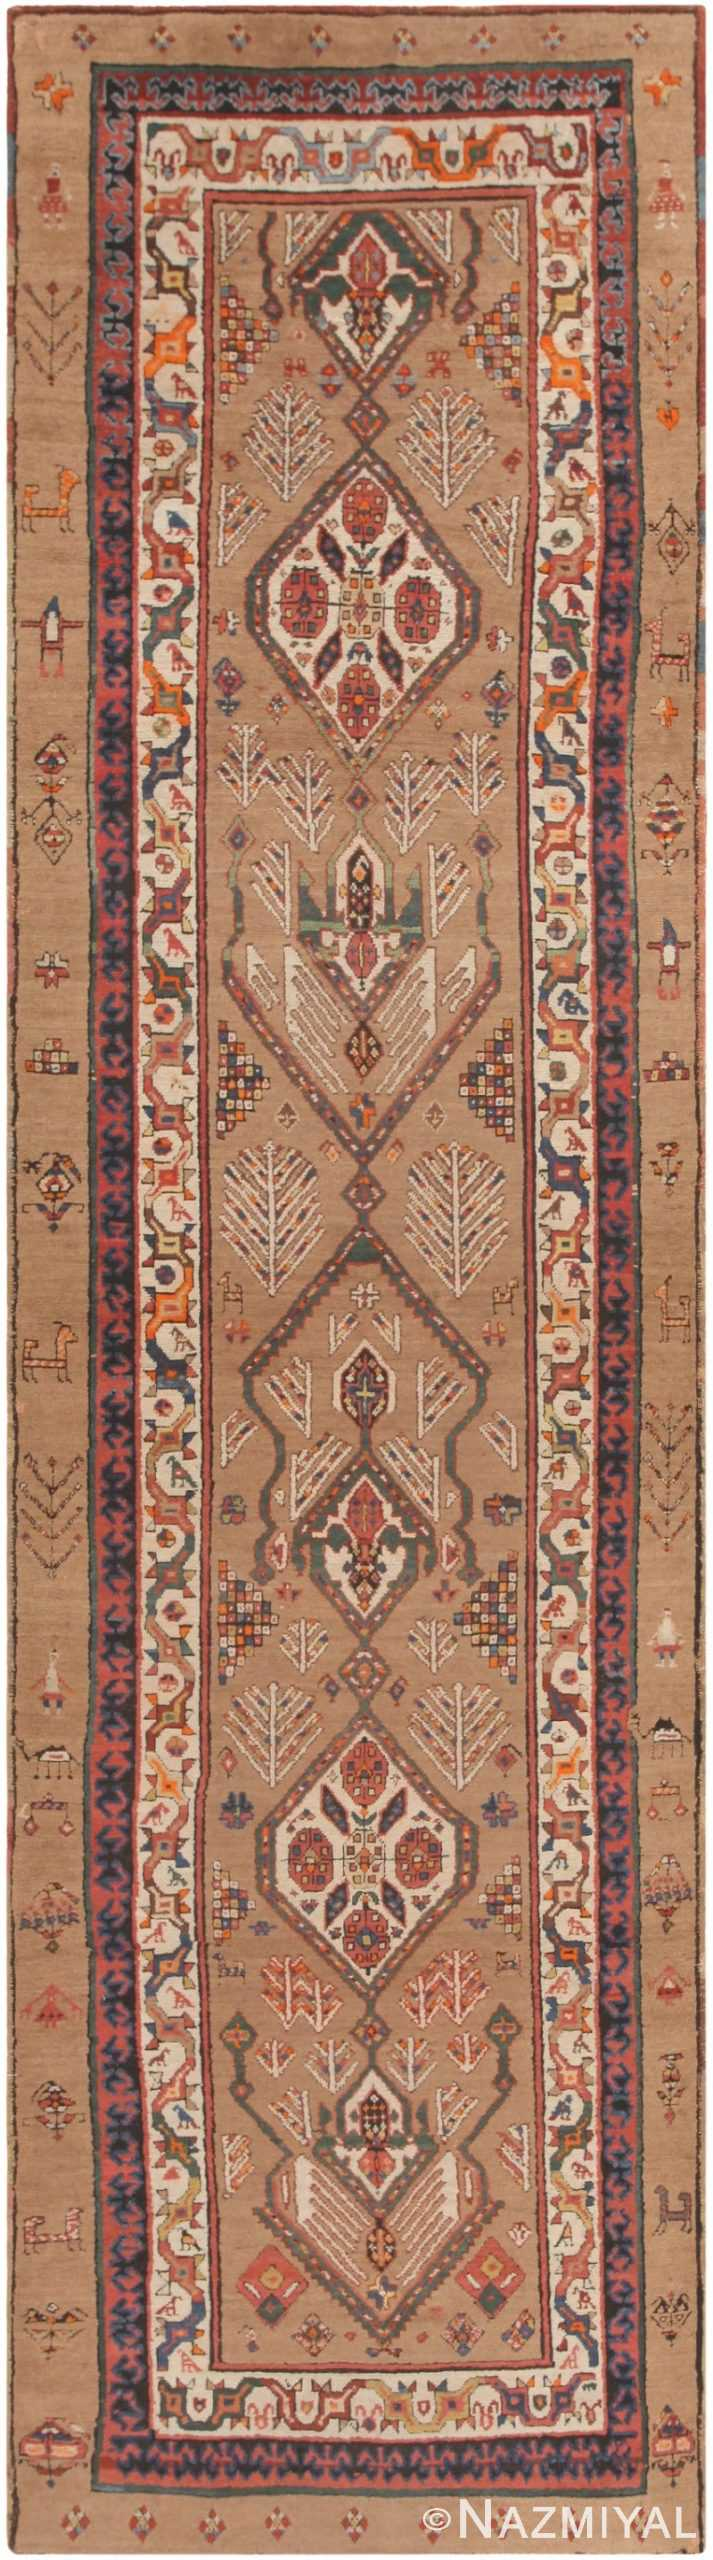 Antique Serab Persian Runner 44402 Nazmiyal